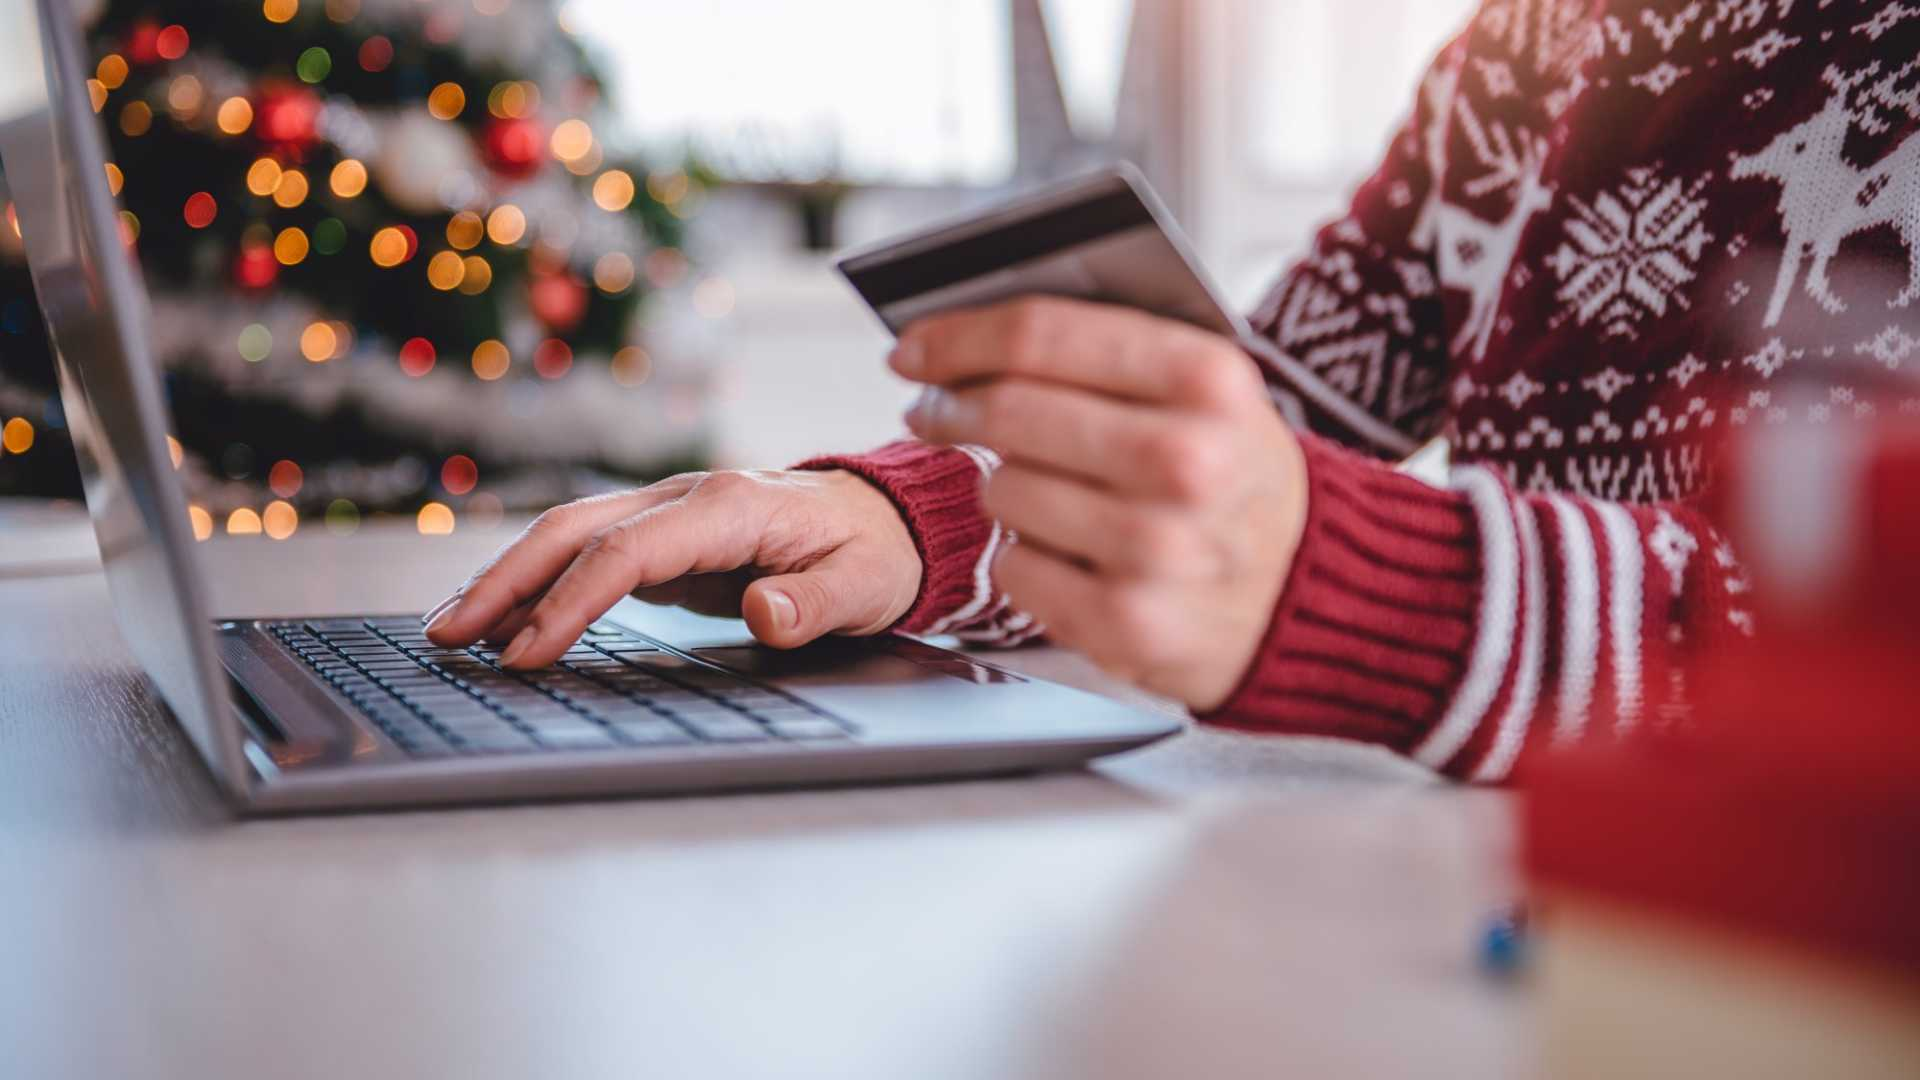 4 Ways to Win Over More Customers This Holiday Season